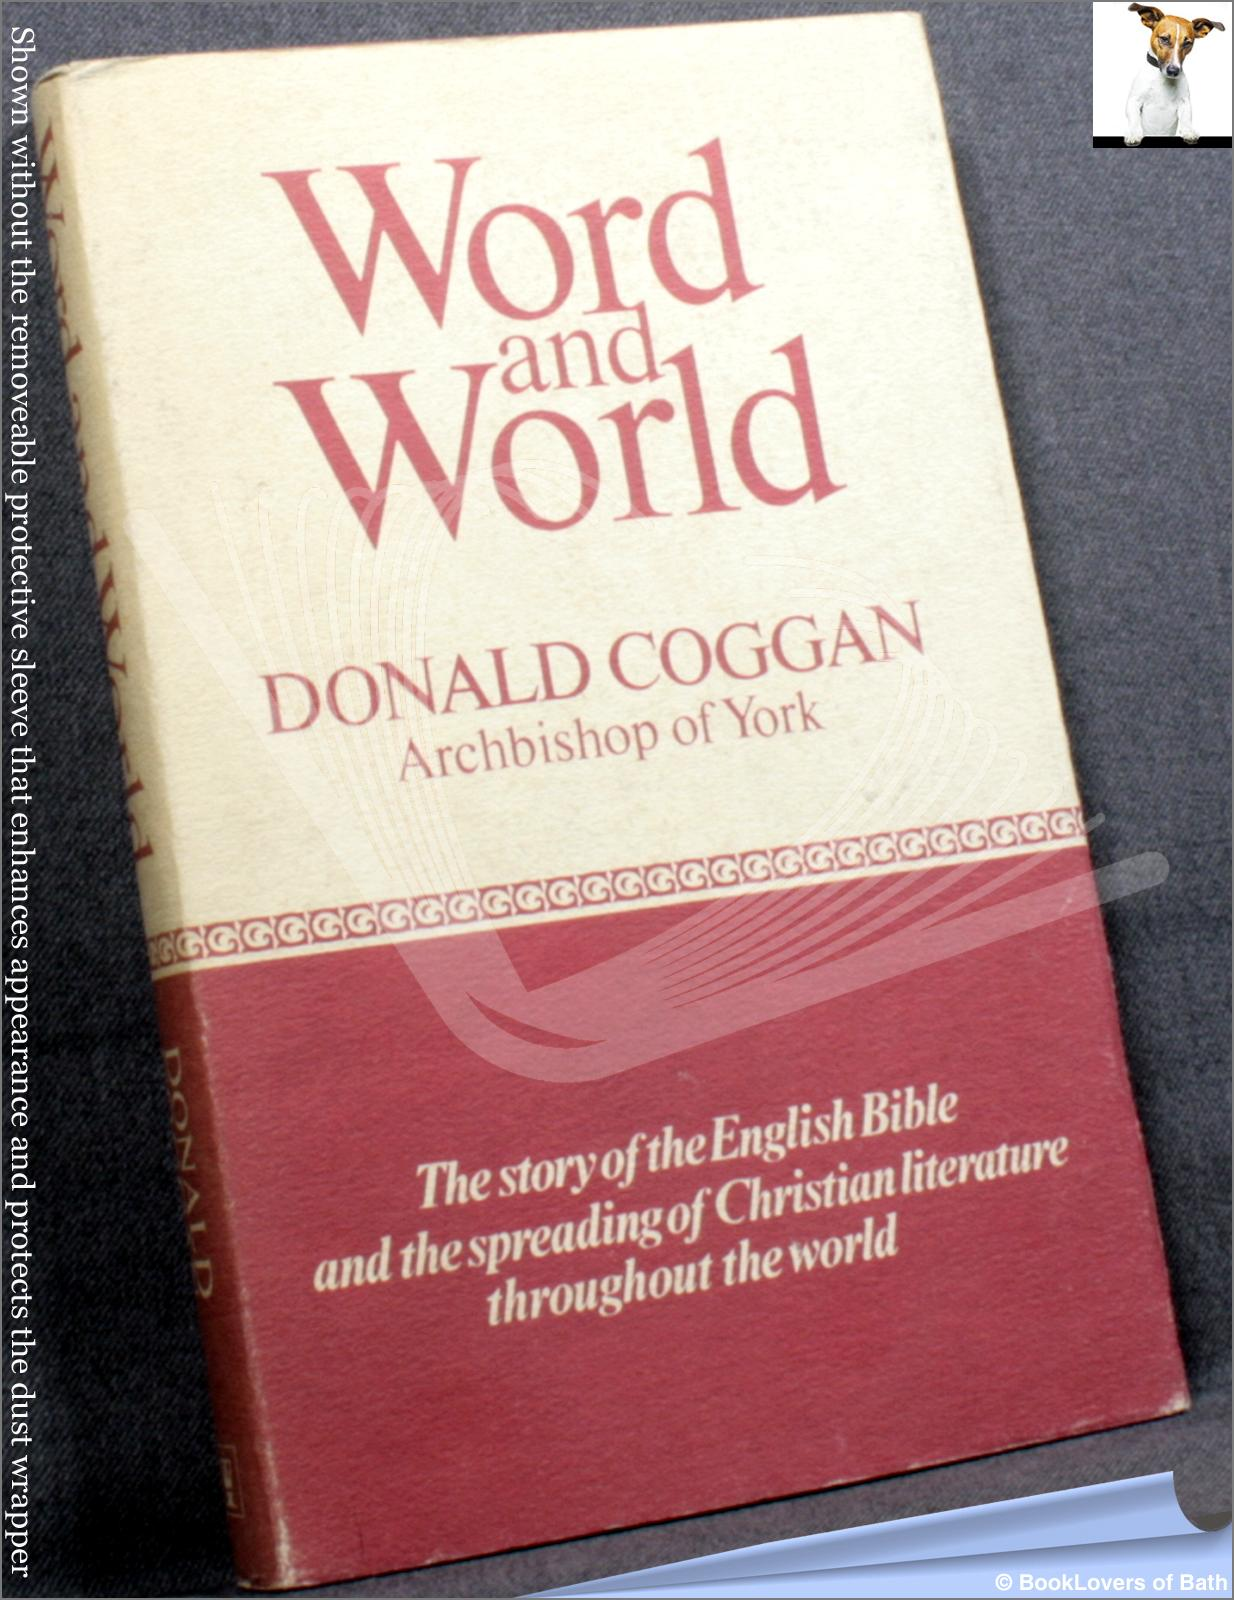 Word and World: The Story of the English Bible and the Spreading of Christian Literature throughout the World - Donald Coggan